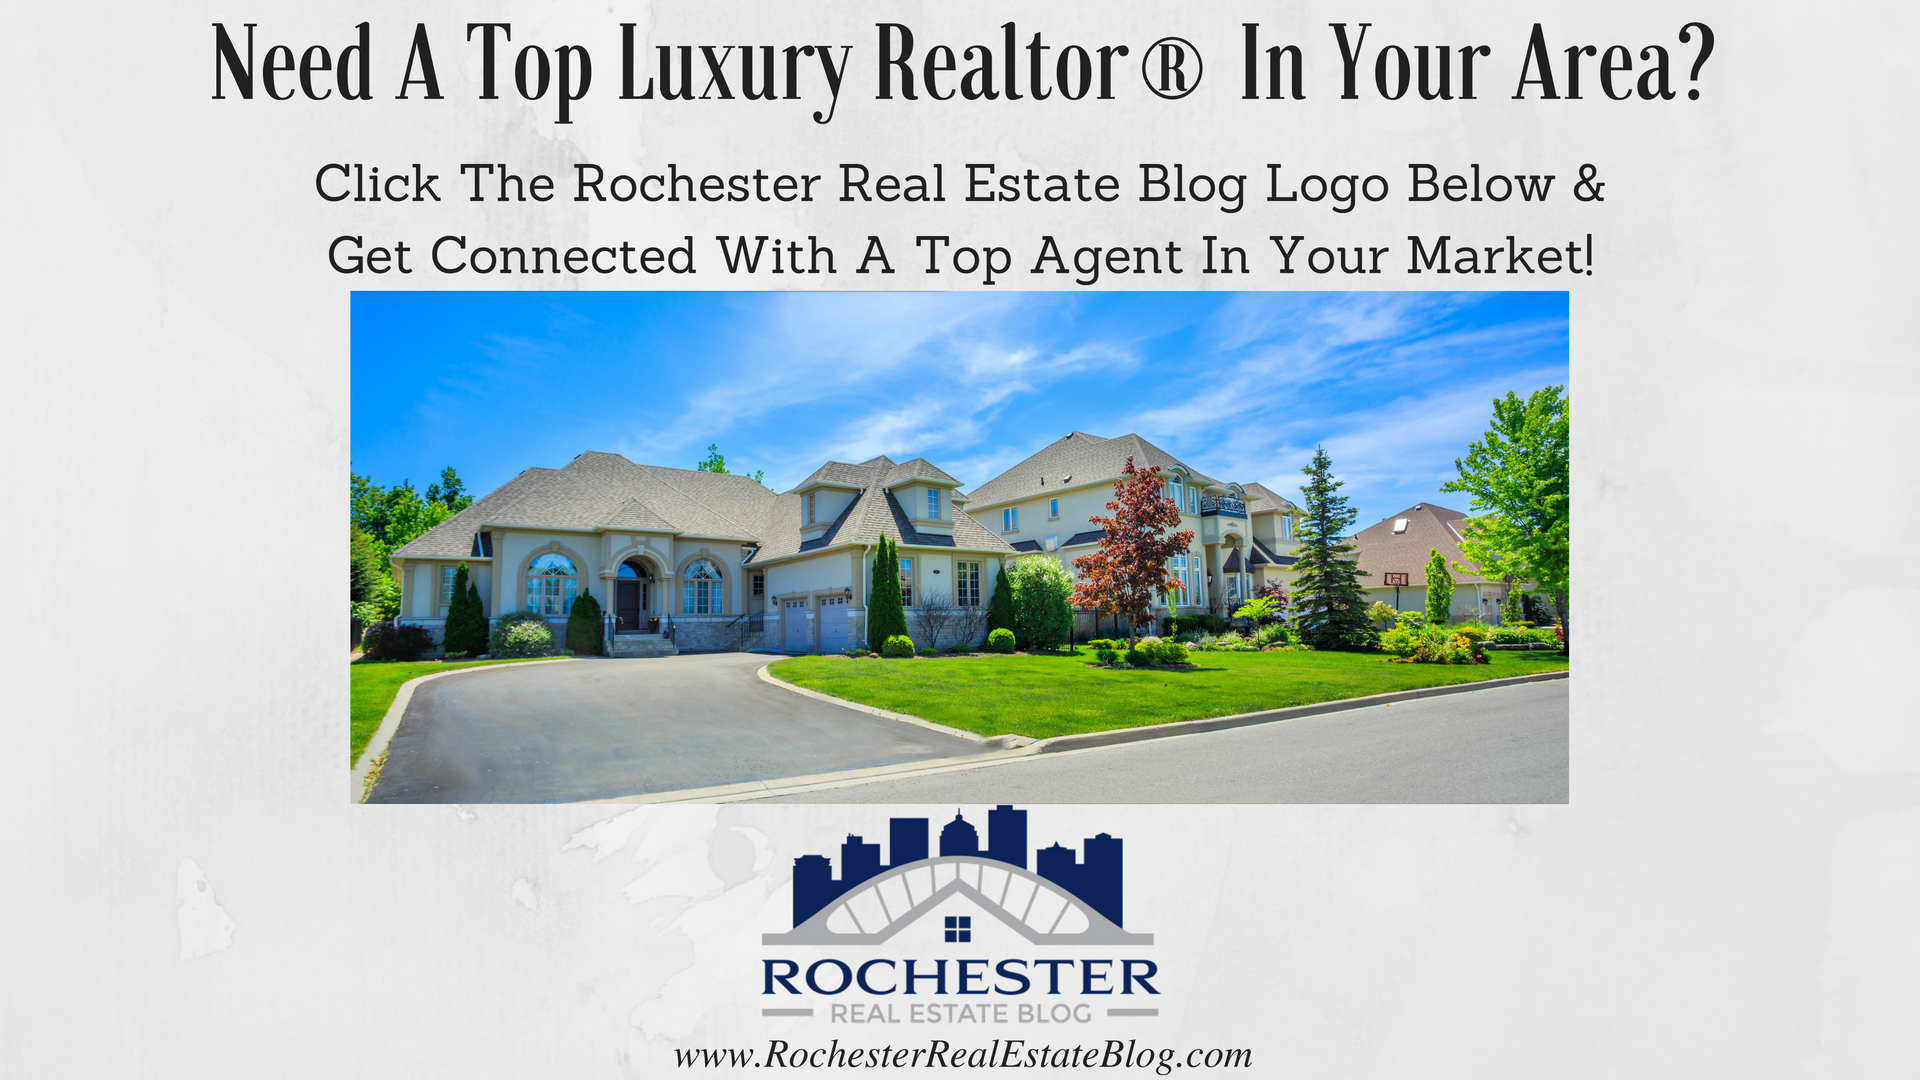 Get Connected With A Top Luxury Realtor® In Your Area